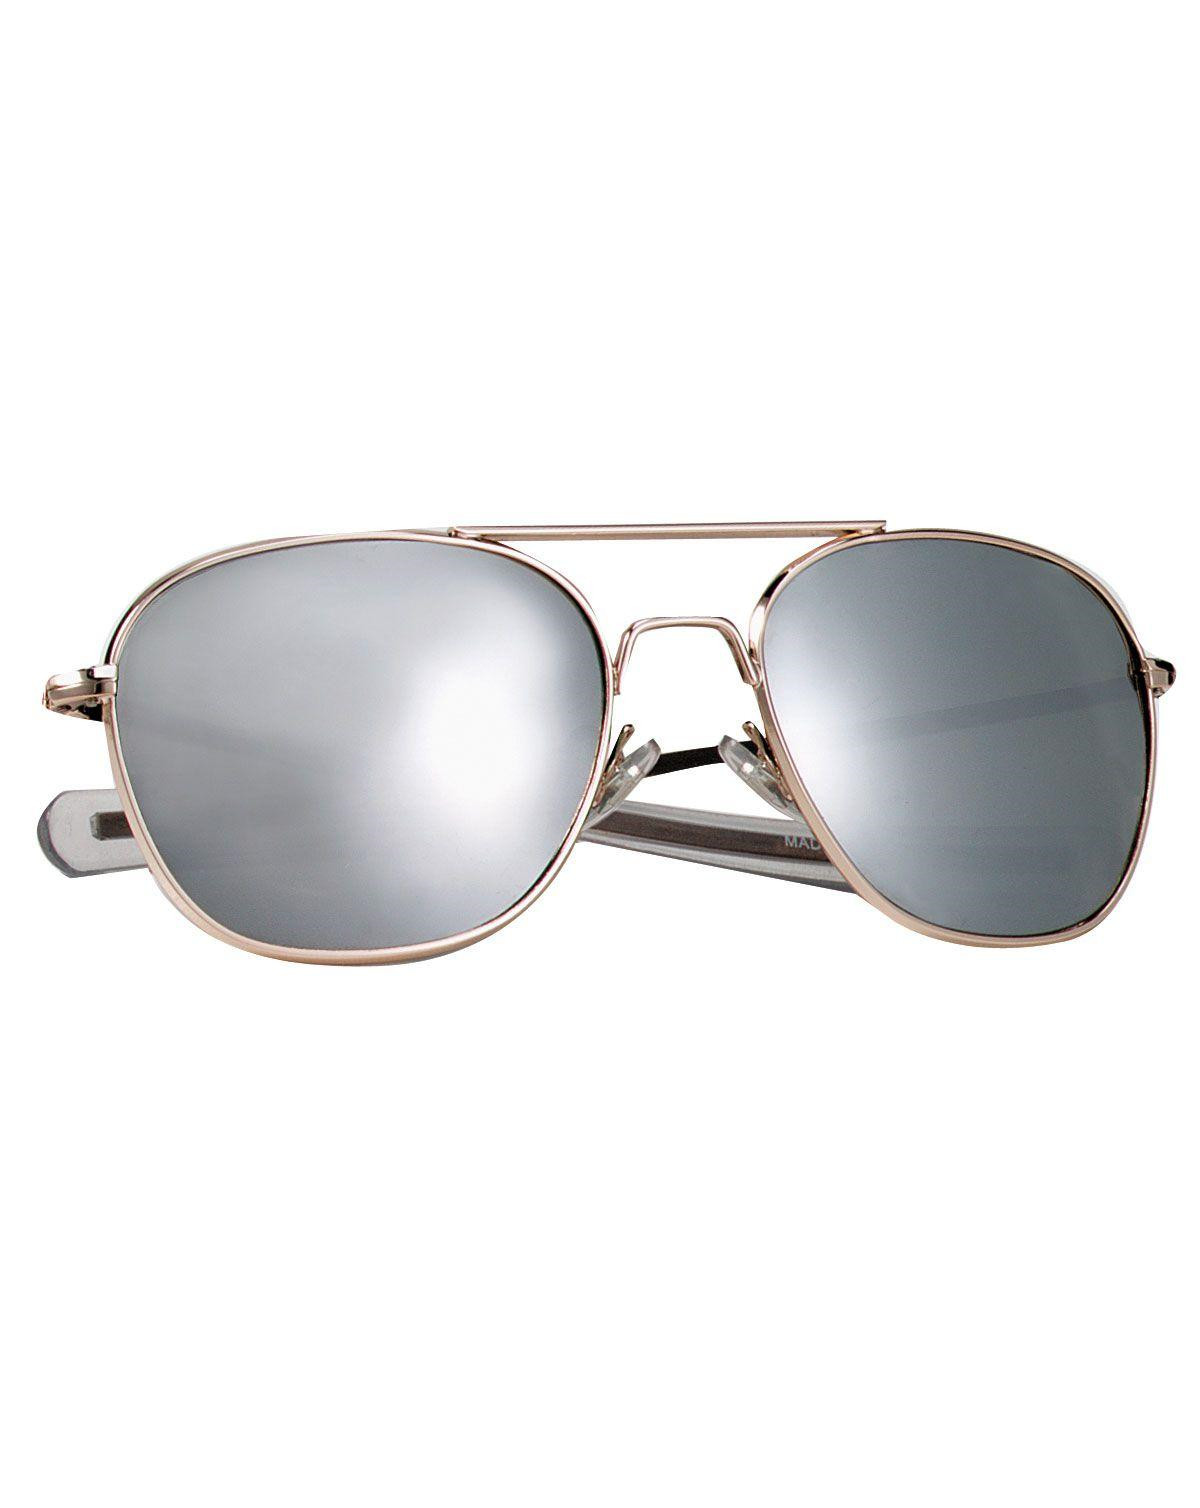 Image of   Rothco G.I. Type Pilot's Aviator Solbrille (Guld m. Spejl, One Size)